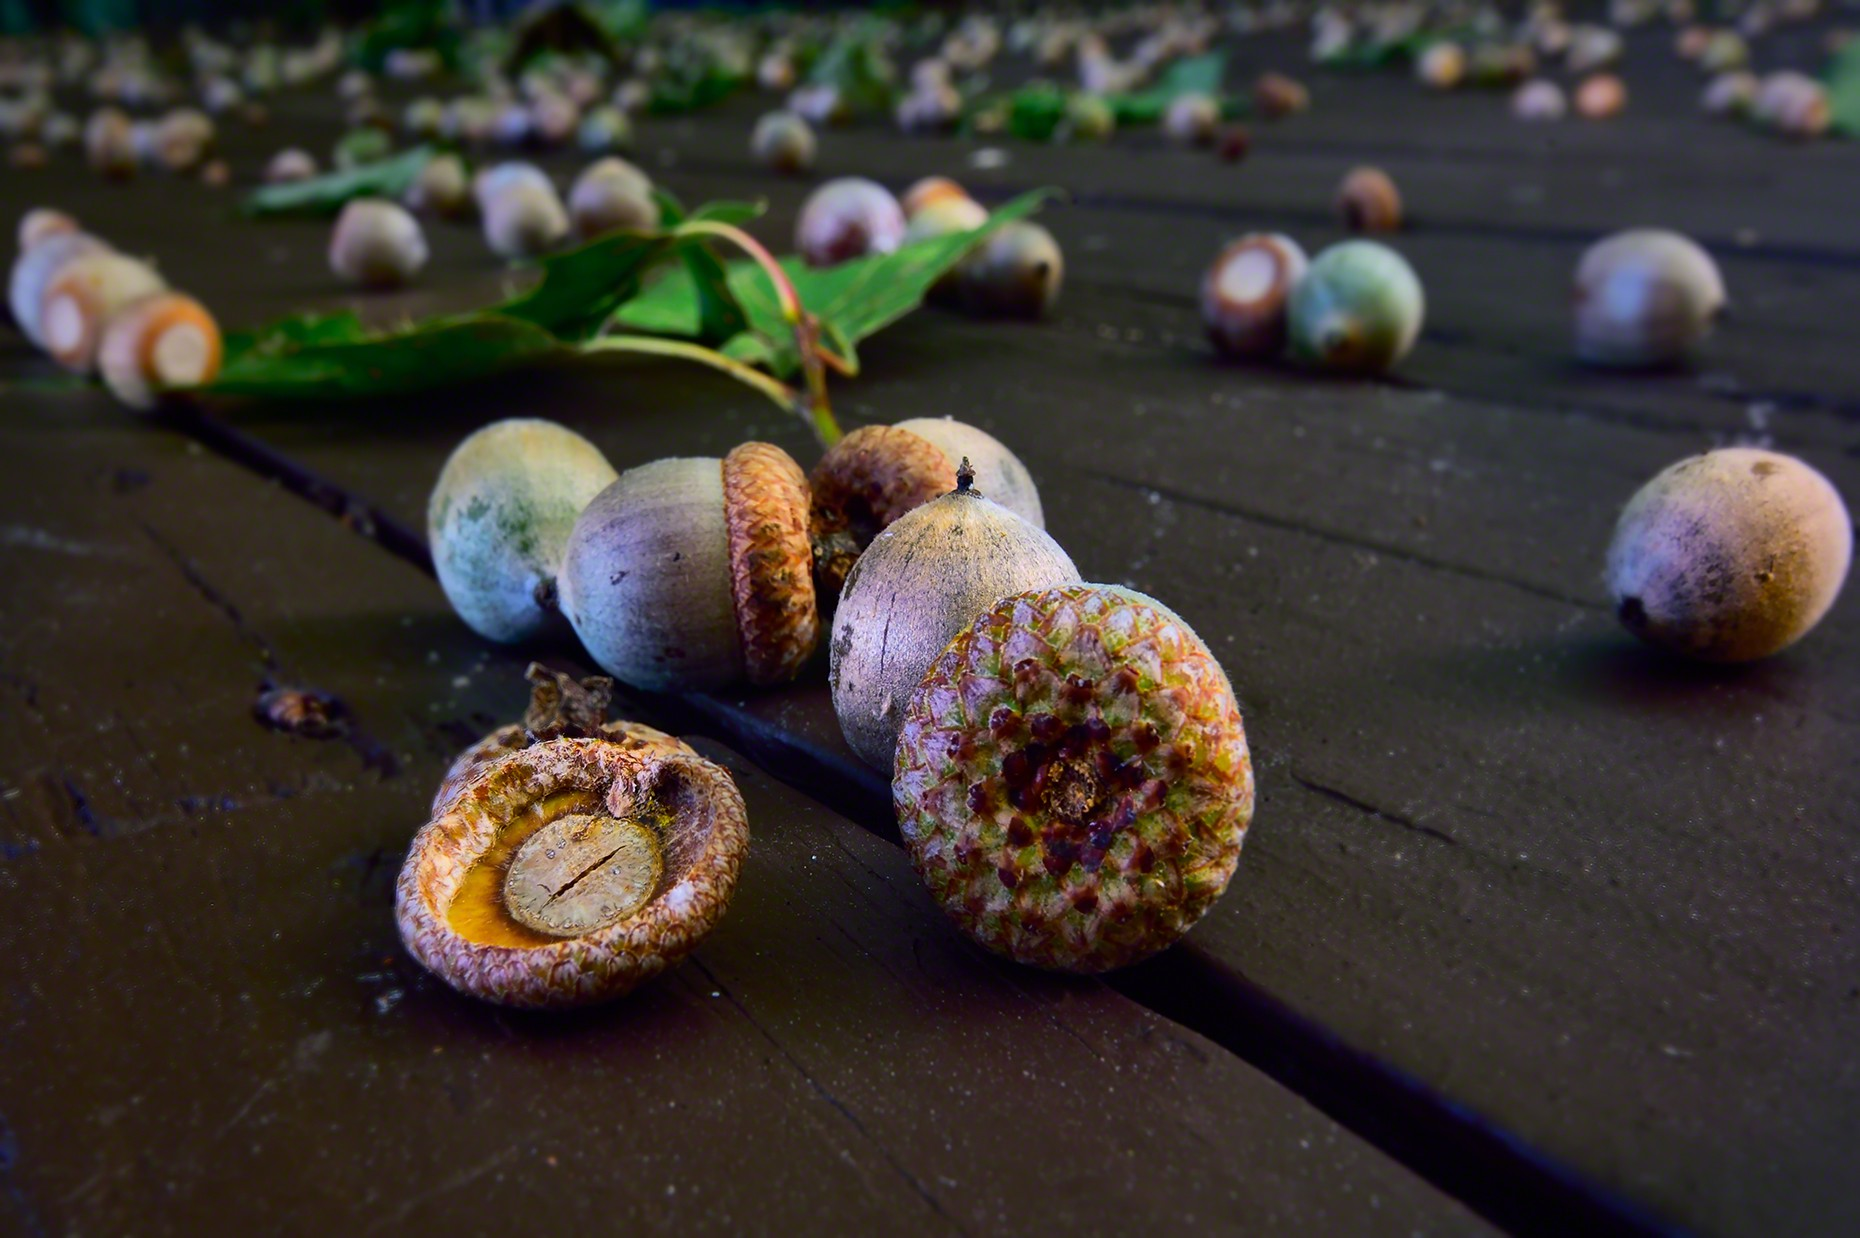 FritzImages | Travel and Outdoor Digital Images | image name = FI 20140830 198 NY Oak Acorns OPT